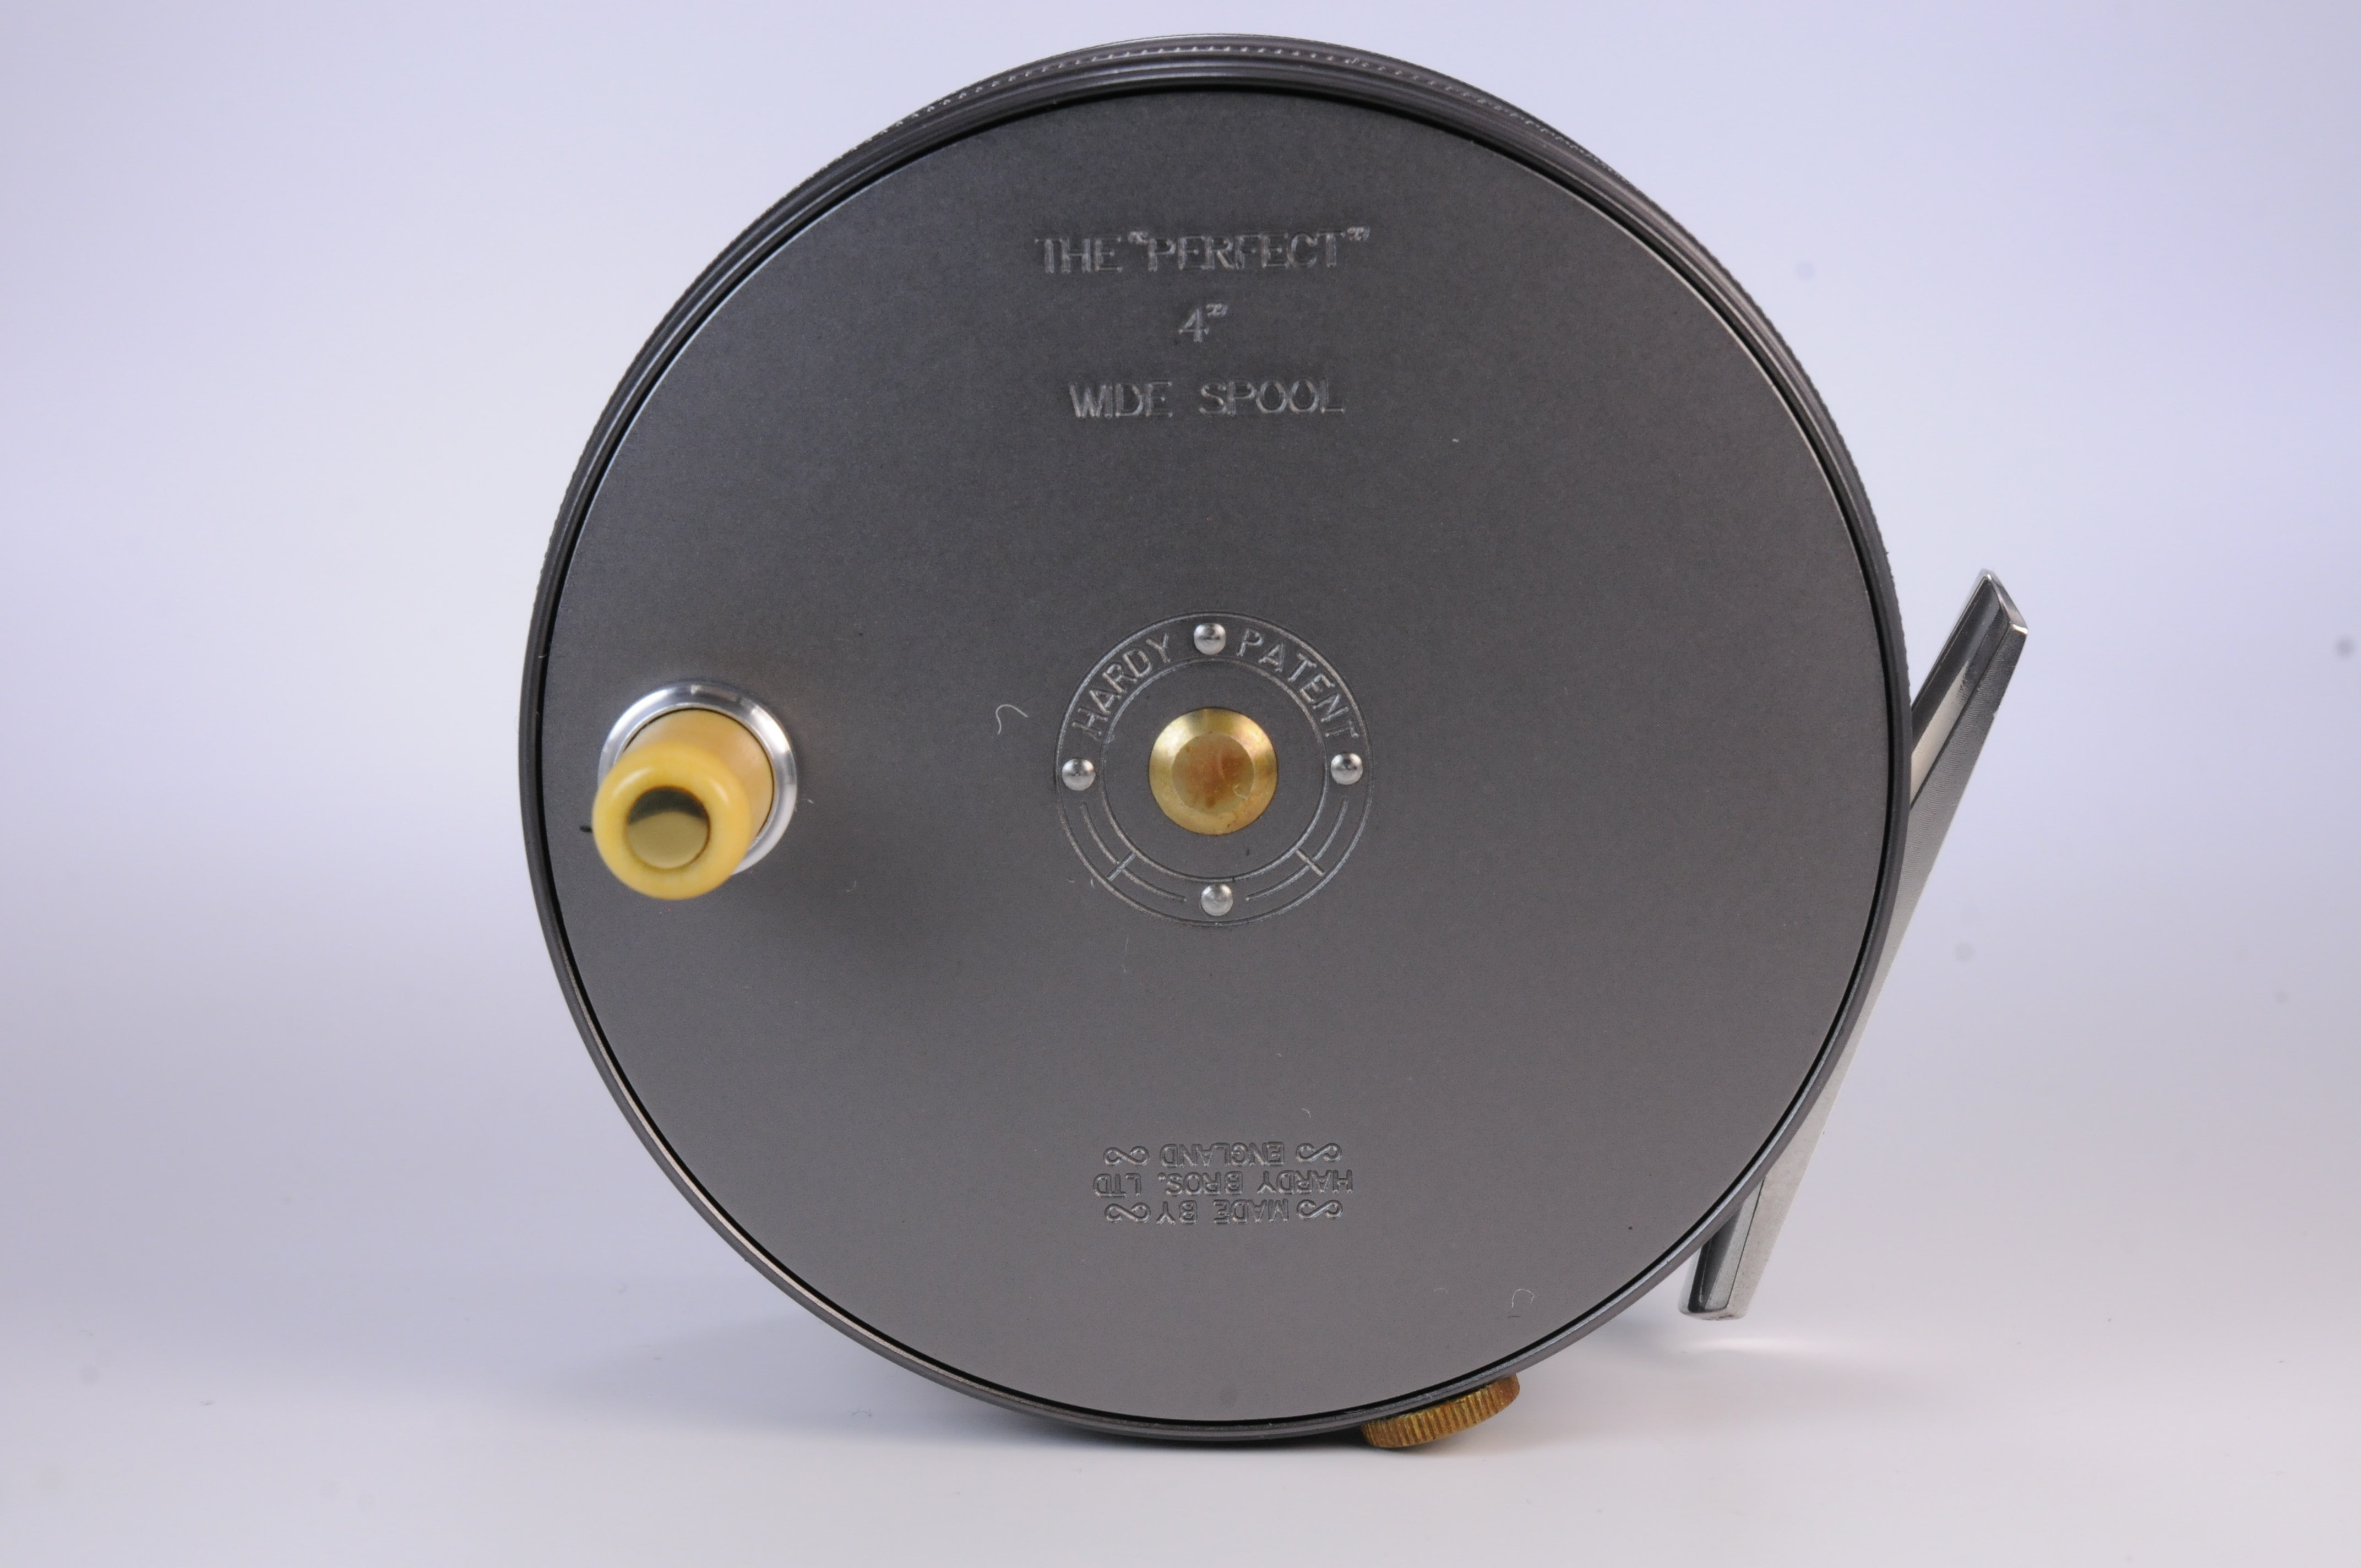 Hardy Perfect 4 Fly Reel Demo 6218 in Excellent Condition